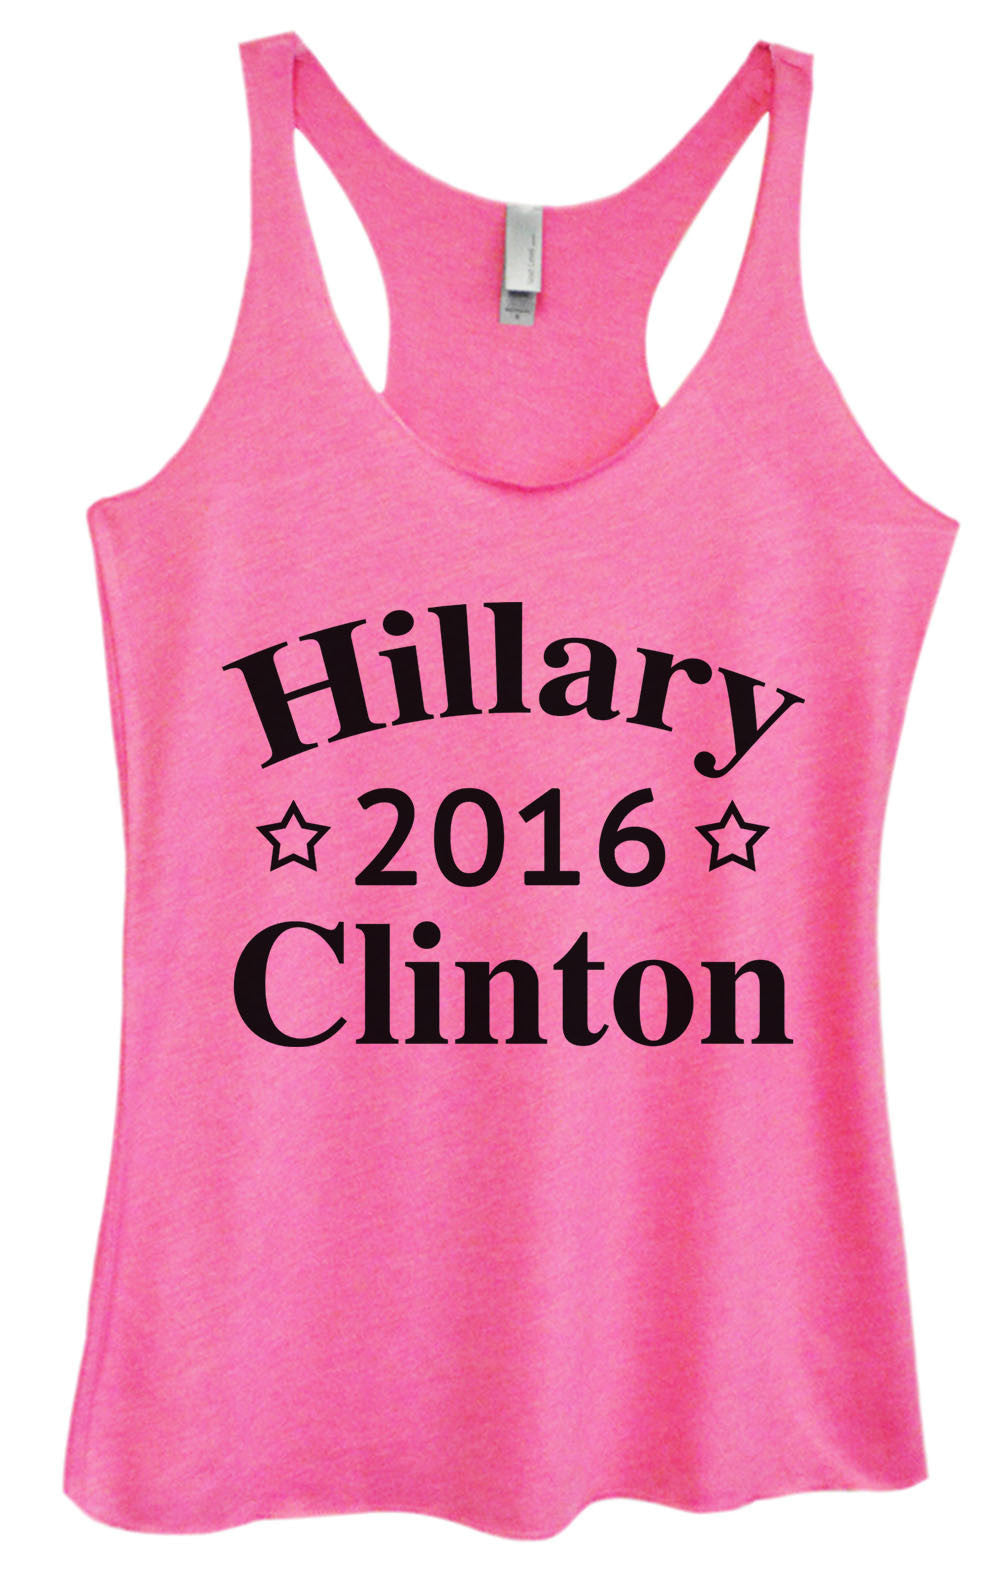 Womens Fashion Triblend Tank Top - Hillary 2016 Clinton - Tri-669 - Funny Shirts Tank Tops Burnouts and Triblends  - 3